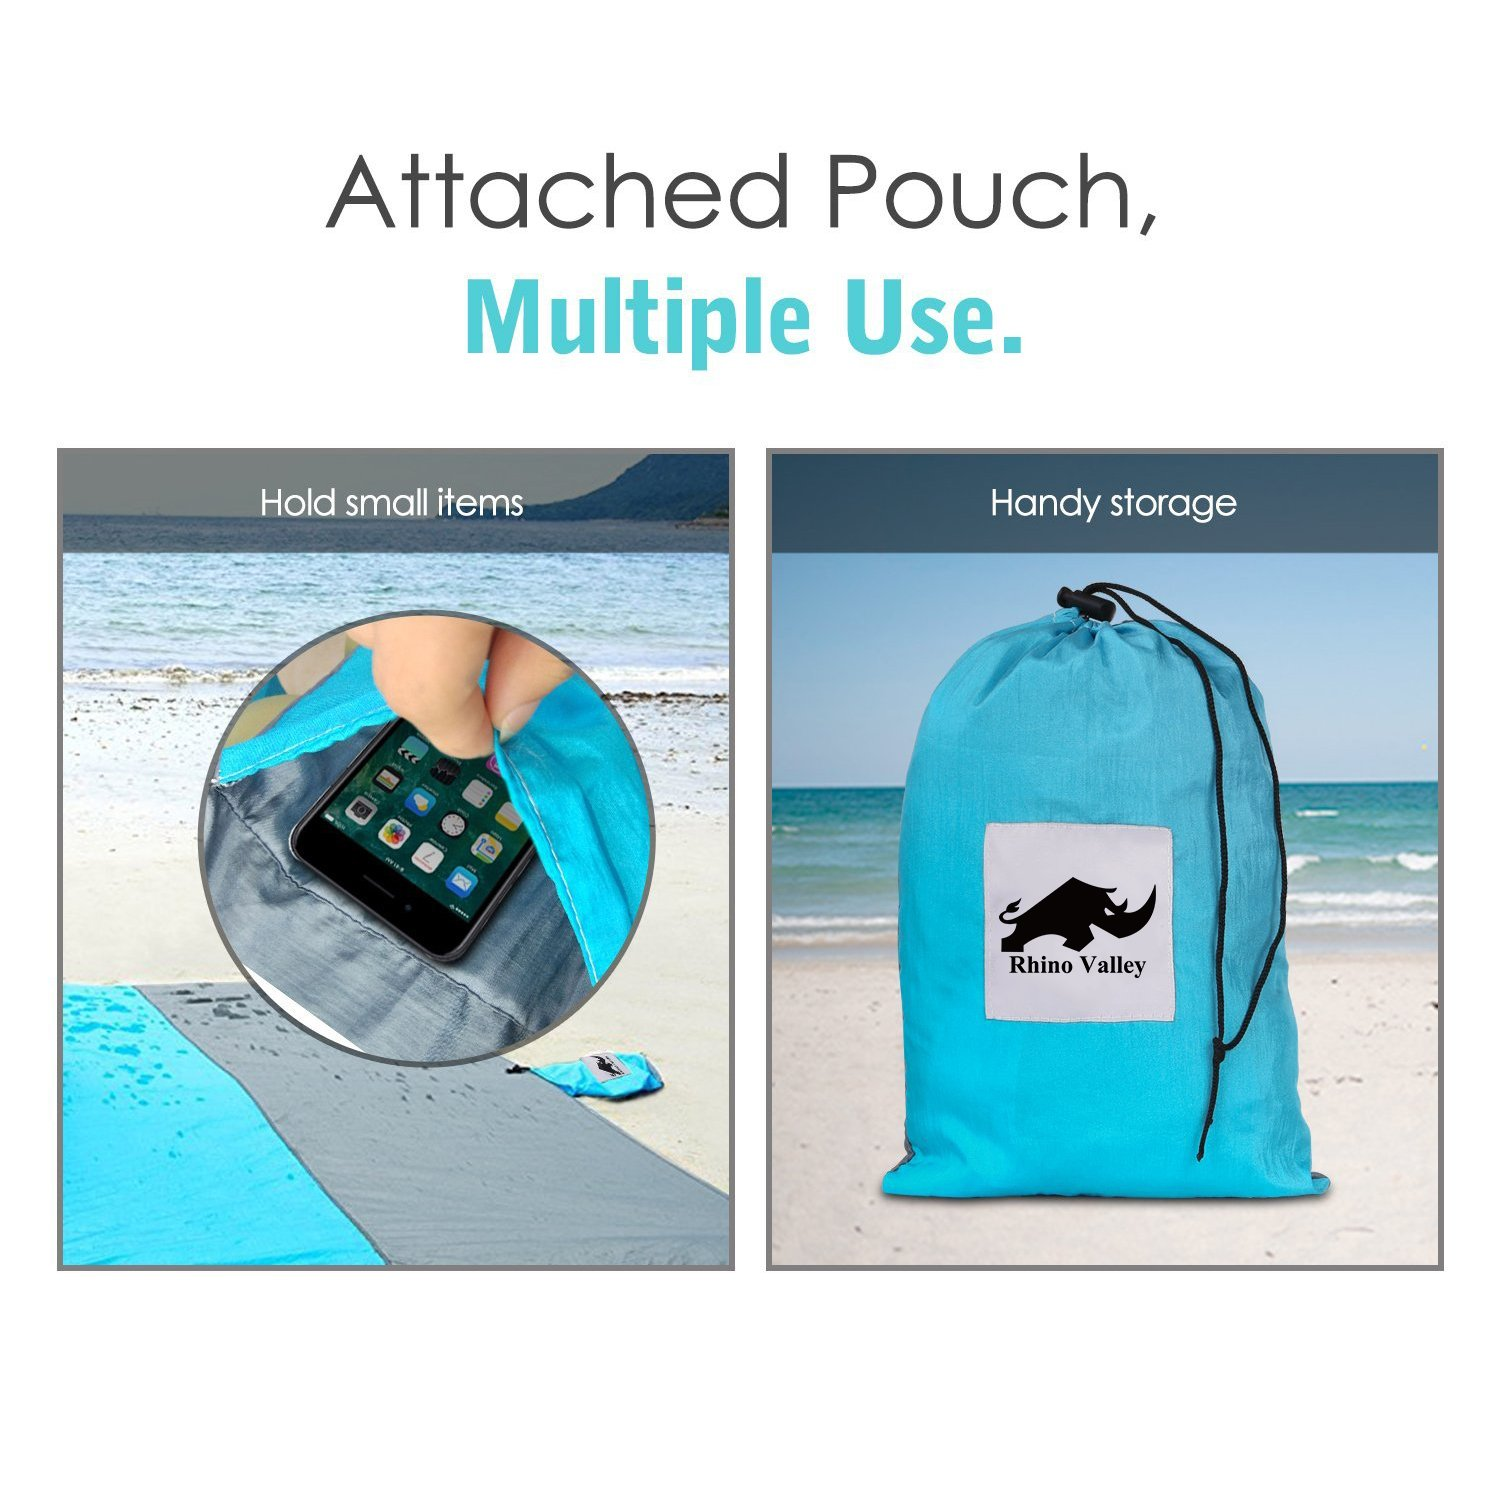 Extra Large 79 x 118 Quick Drying Lightweight Soft Mat with Travel Pouch Rhino Valley Huge Sand Free Compact Outdoor Beach Picnic Blanket Blue